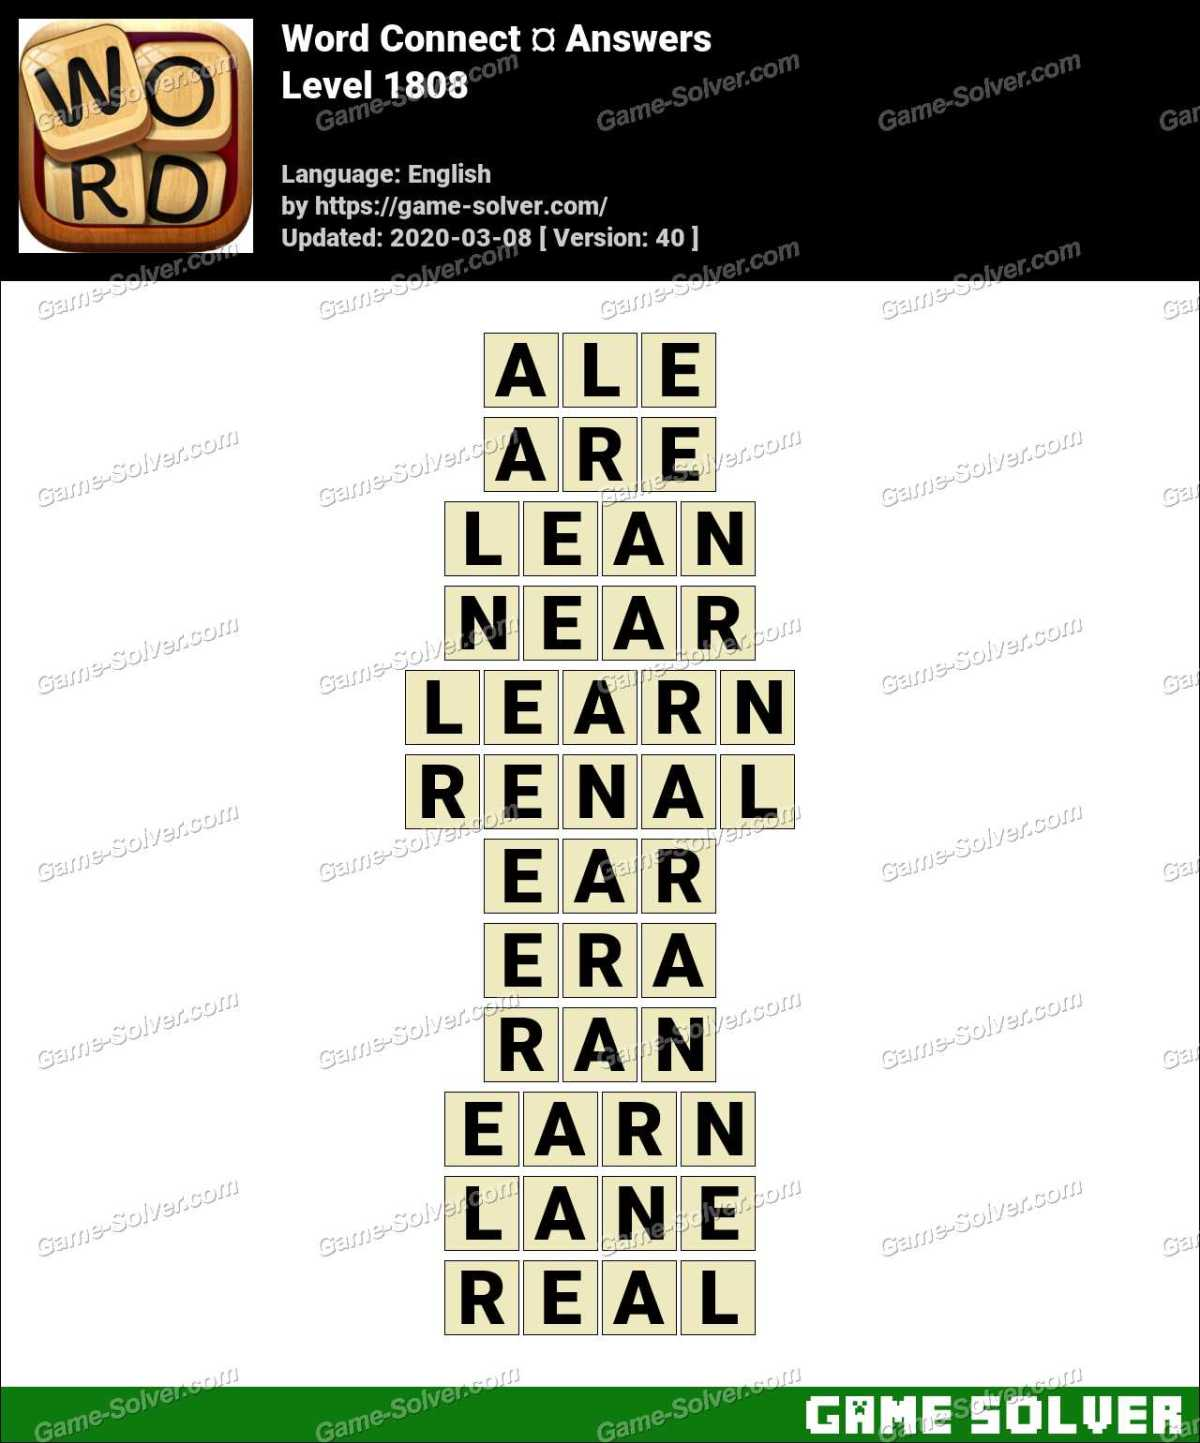 Word Connect Level 1808 Answers